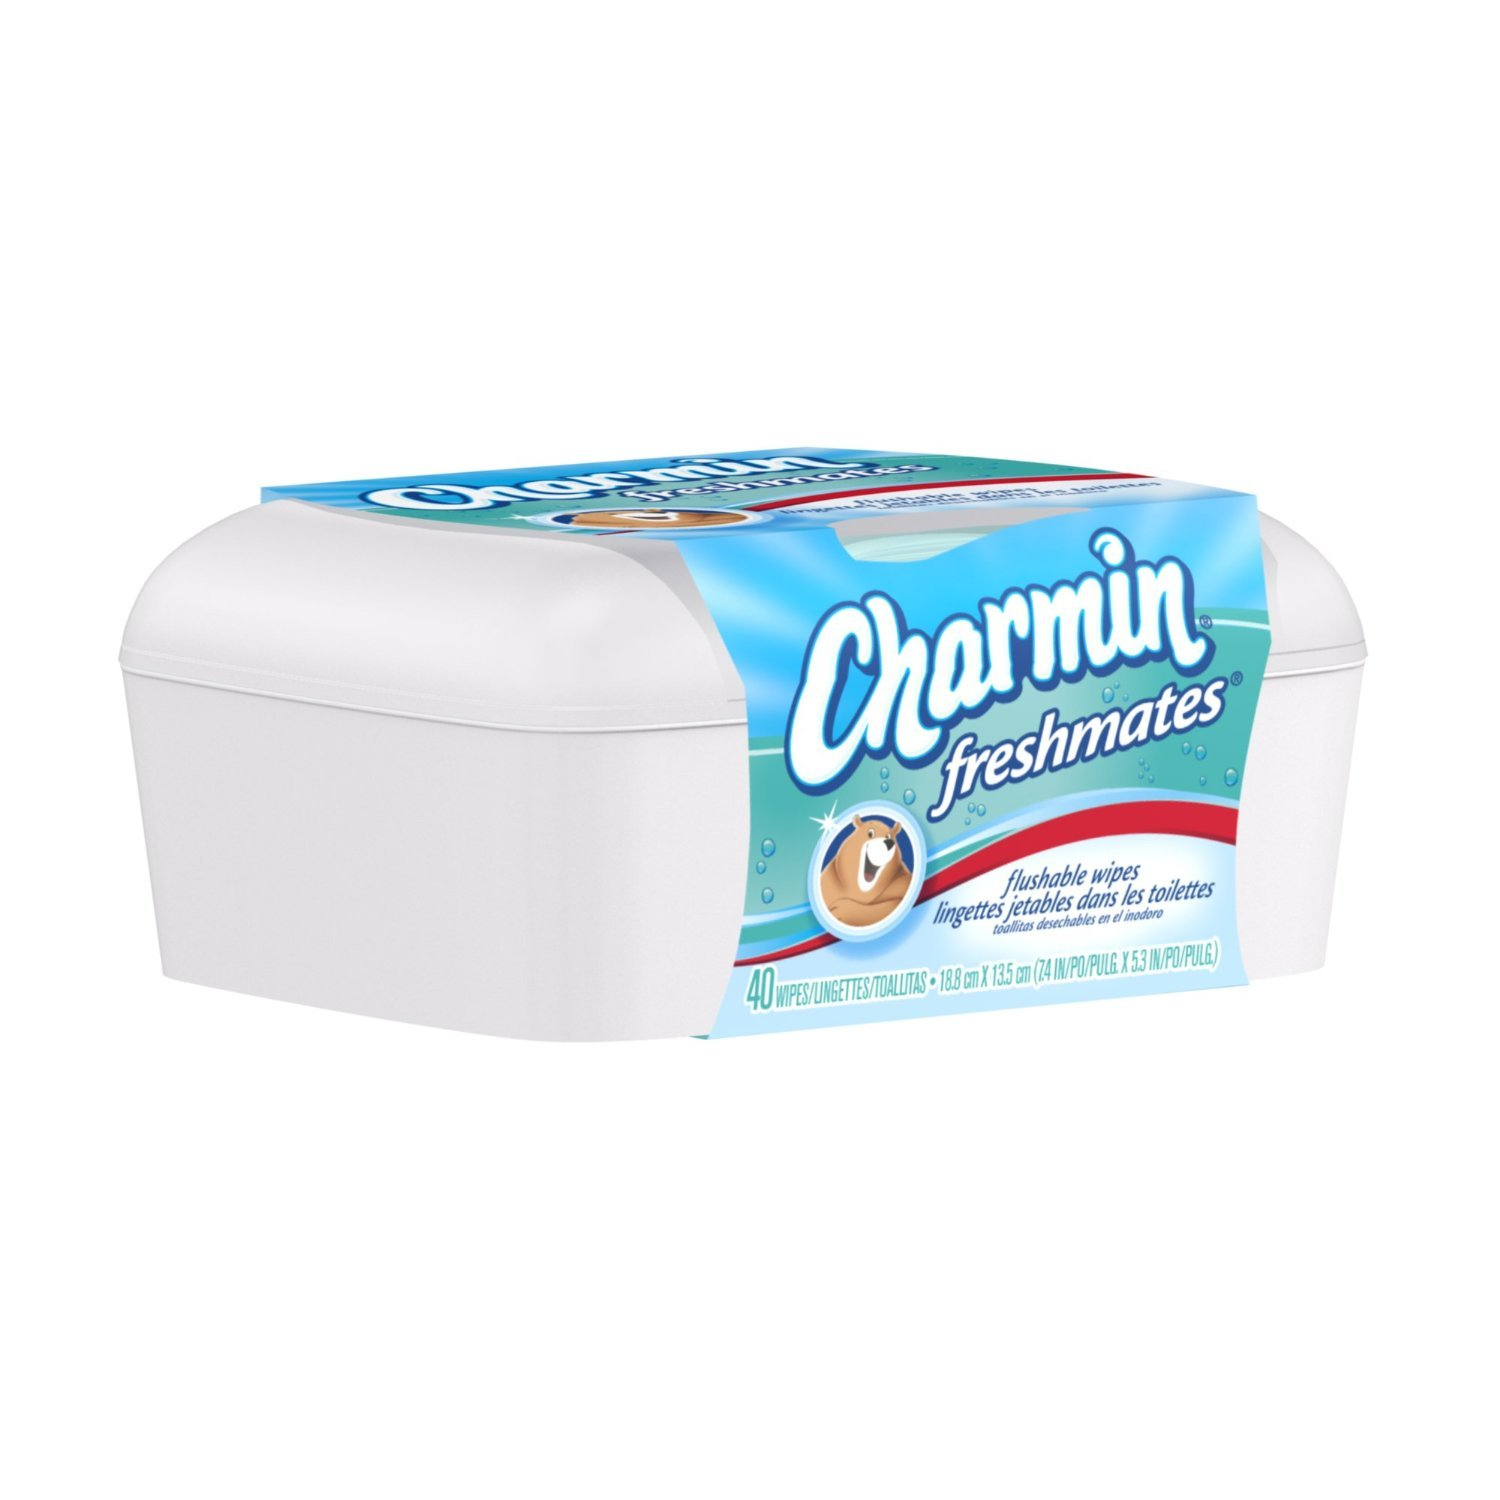 Amazon.com: Charmin Freshmates Flushable Wipes 40 Count with Refillable Tub - Pack of 3: Health & Personal Care